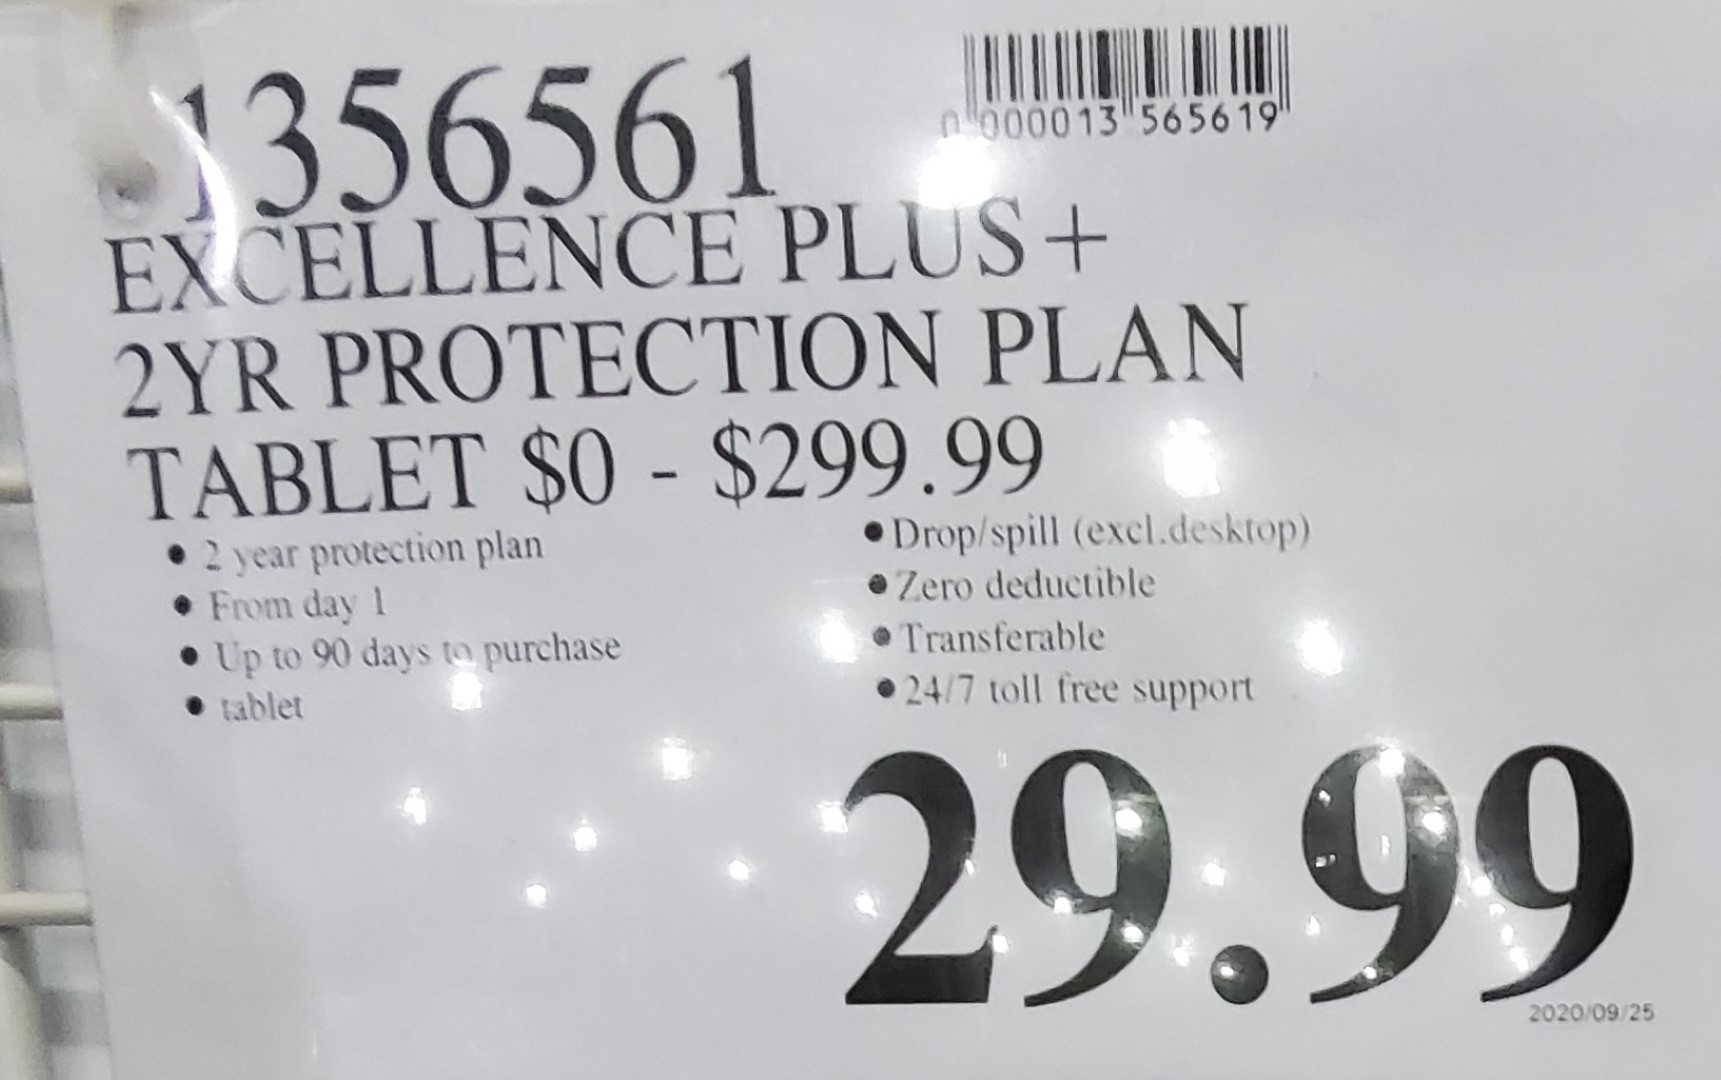 excellence plus+ protection plan